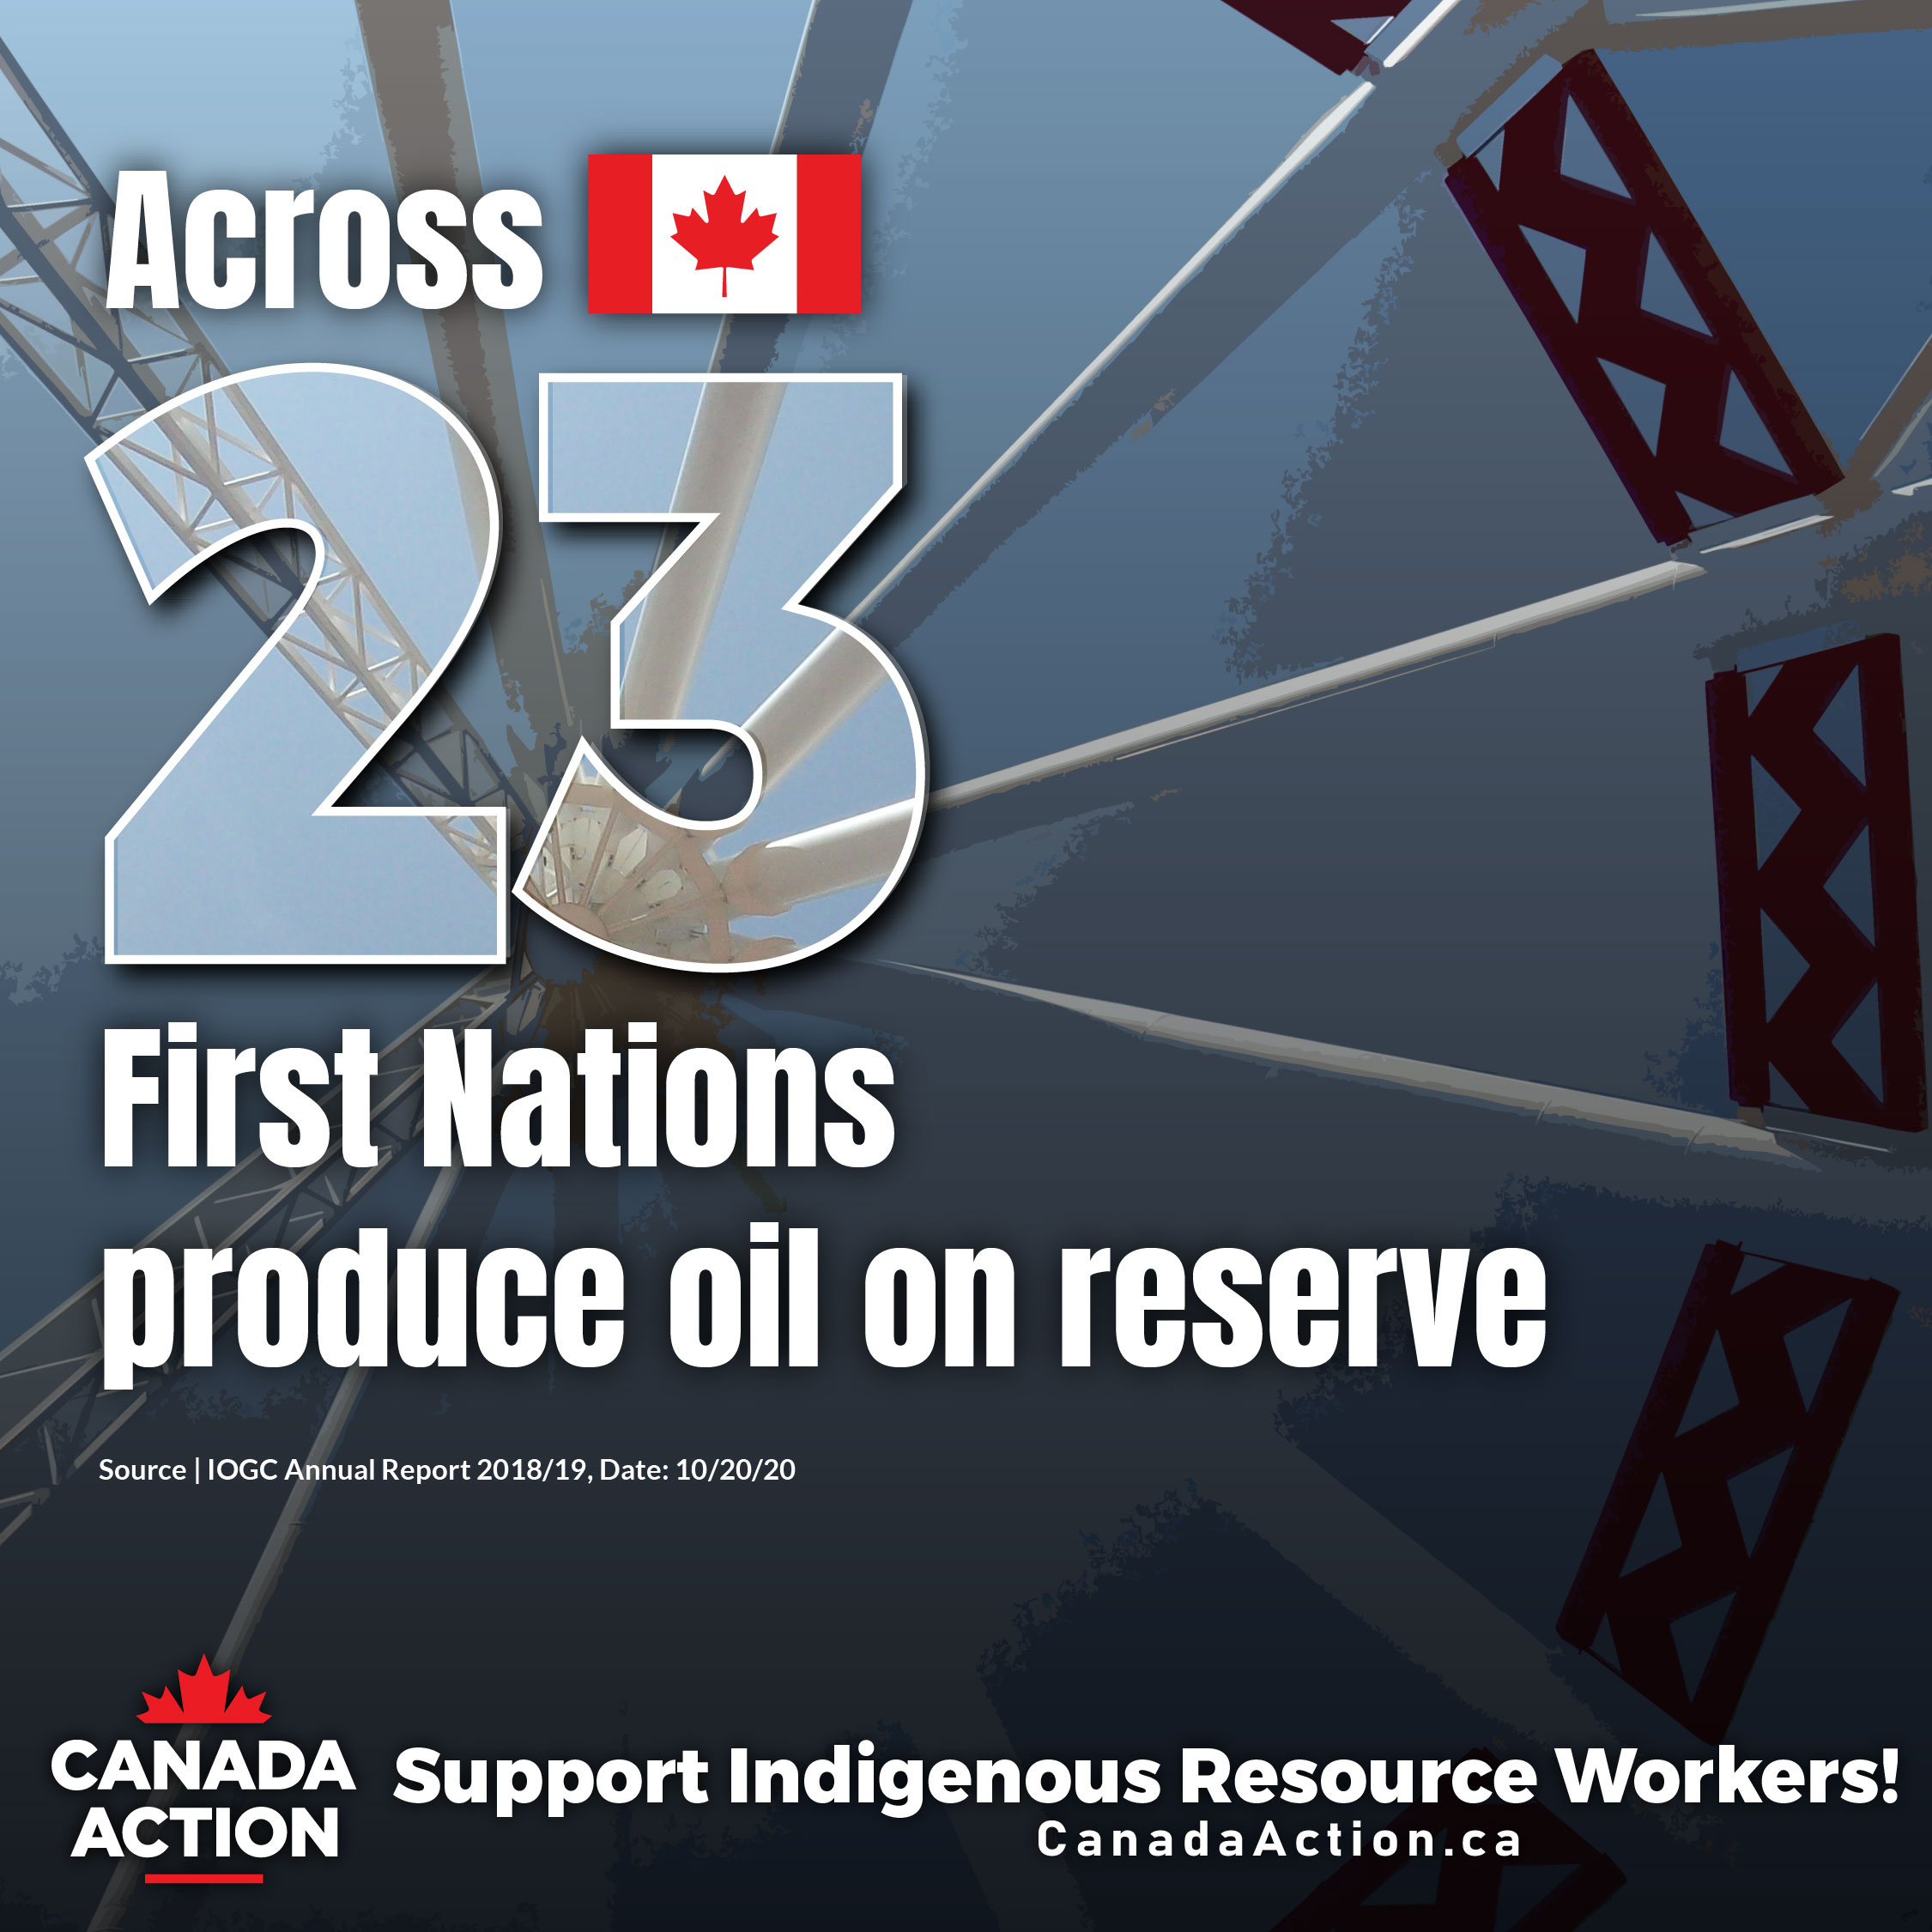 23 First Nations Produce Oil on Reserve in Canada